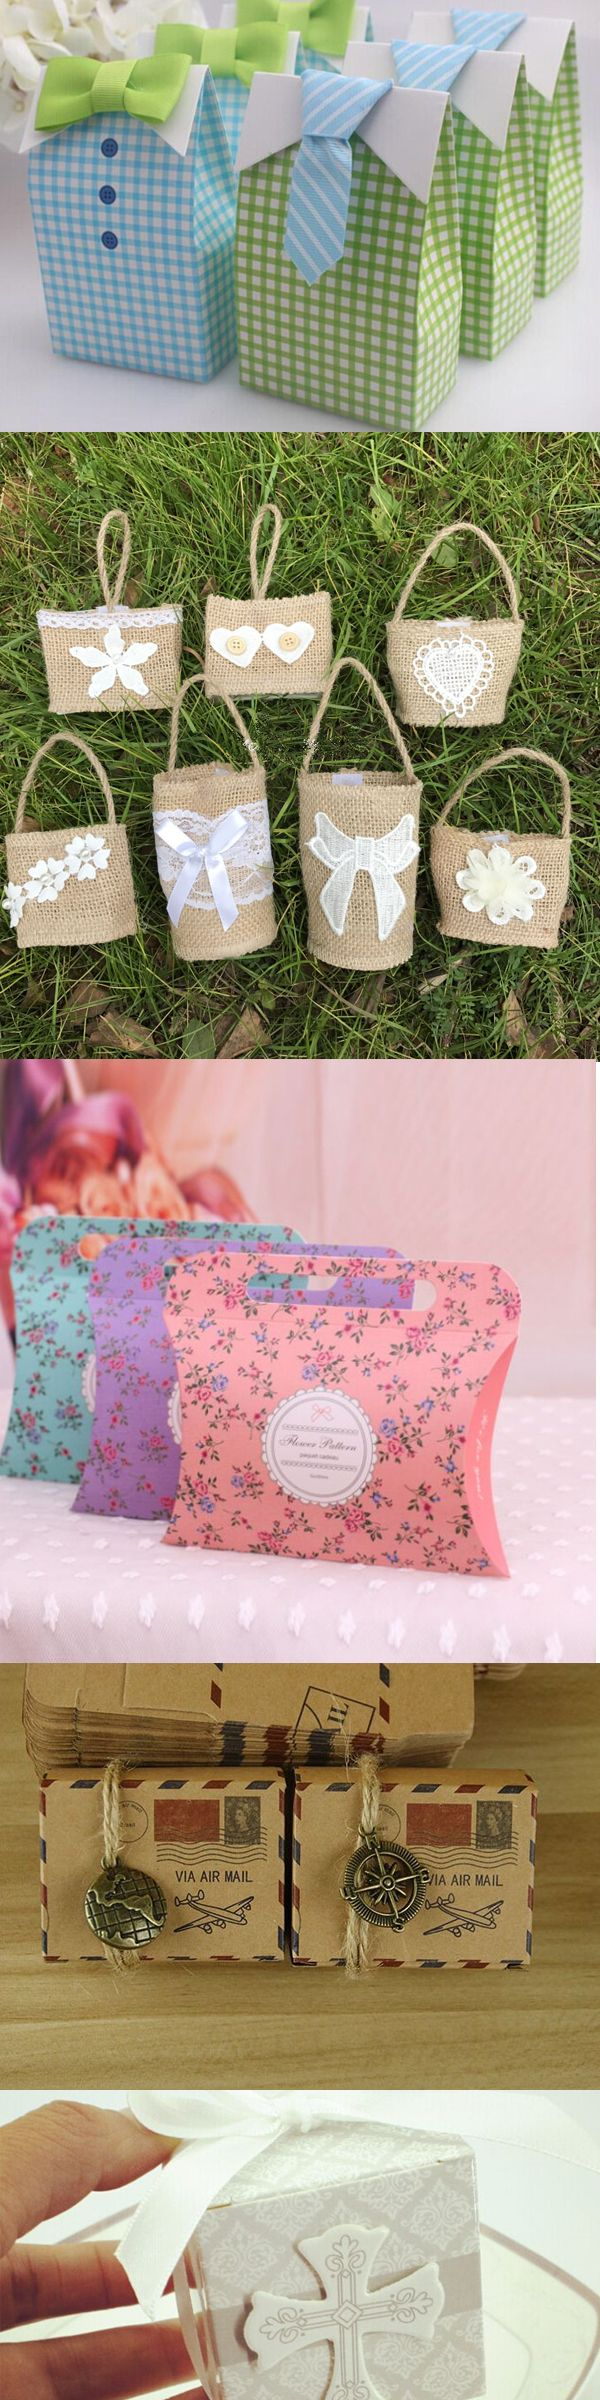 30+ Beautiful Wedding Candy Favor Boxes   Rustic wedding favors ...